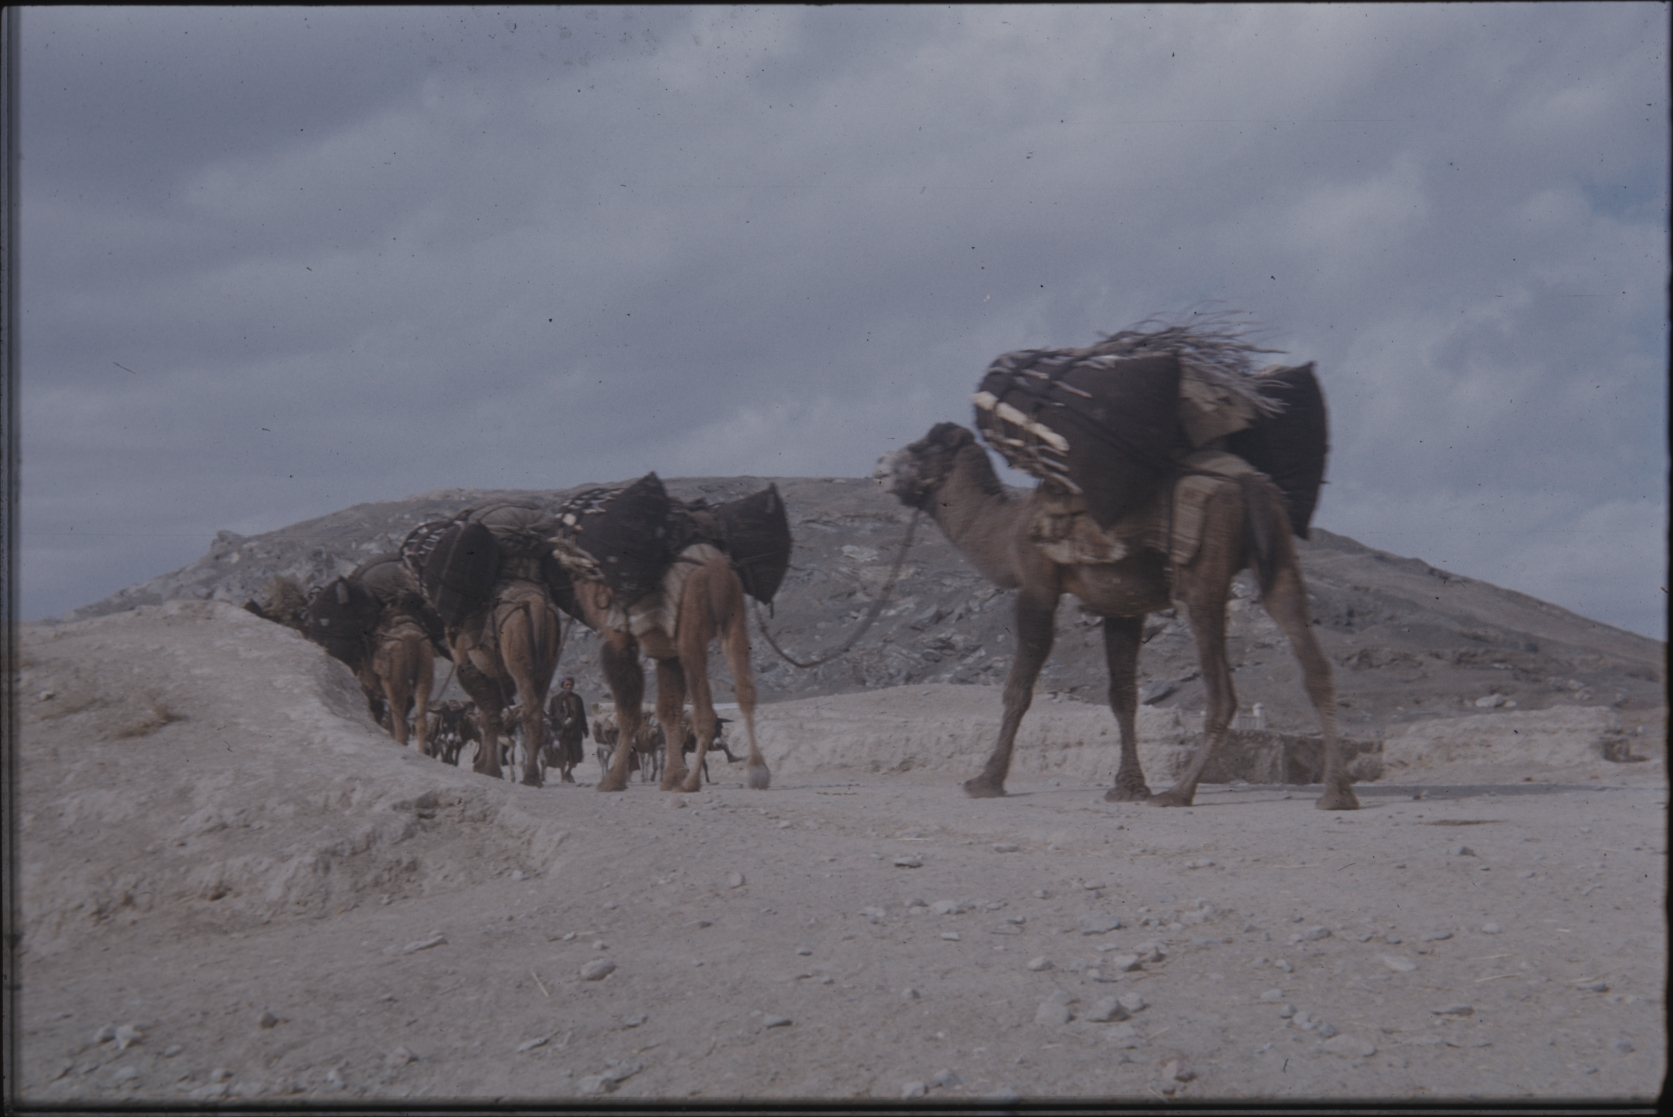 Heavily loaded camels. A camel can carry approximately 300 kg. The Henning Haslund-Christensen Memorial Expedition, 1953-'55. Photo: the Moesgaard Museum archives